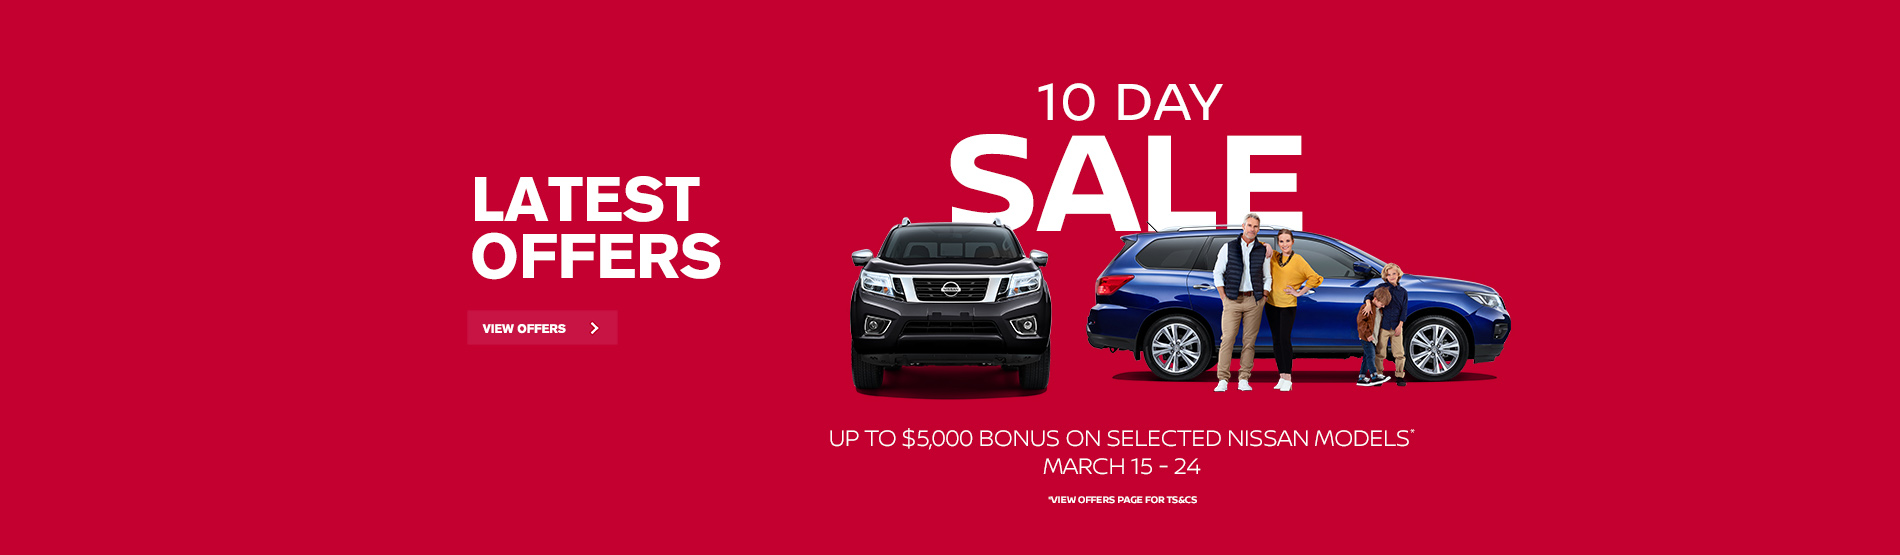 Nissan - 10 Day Sale